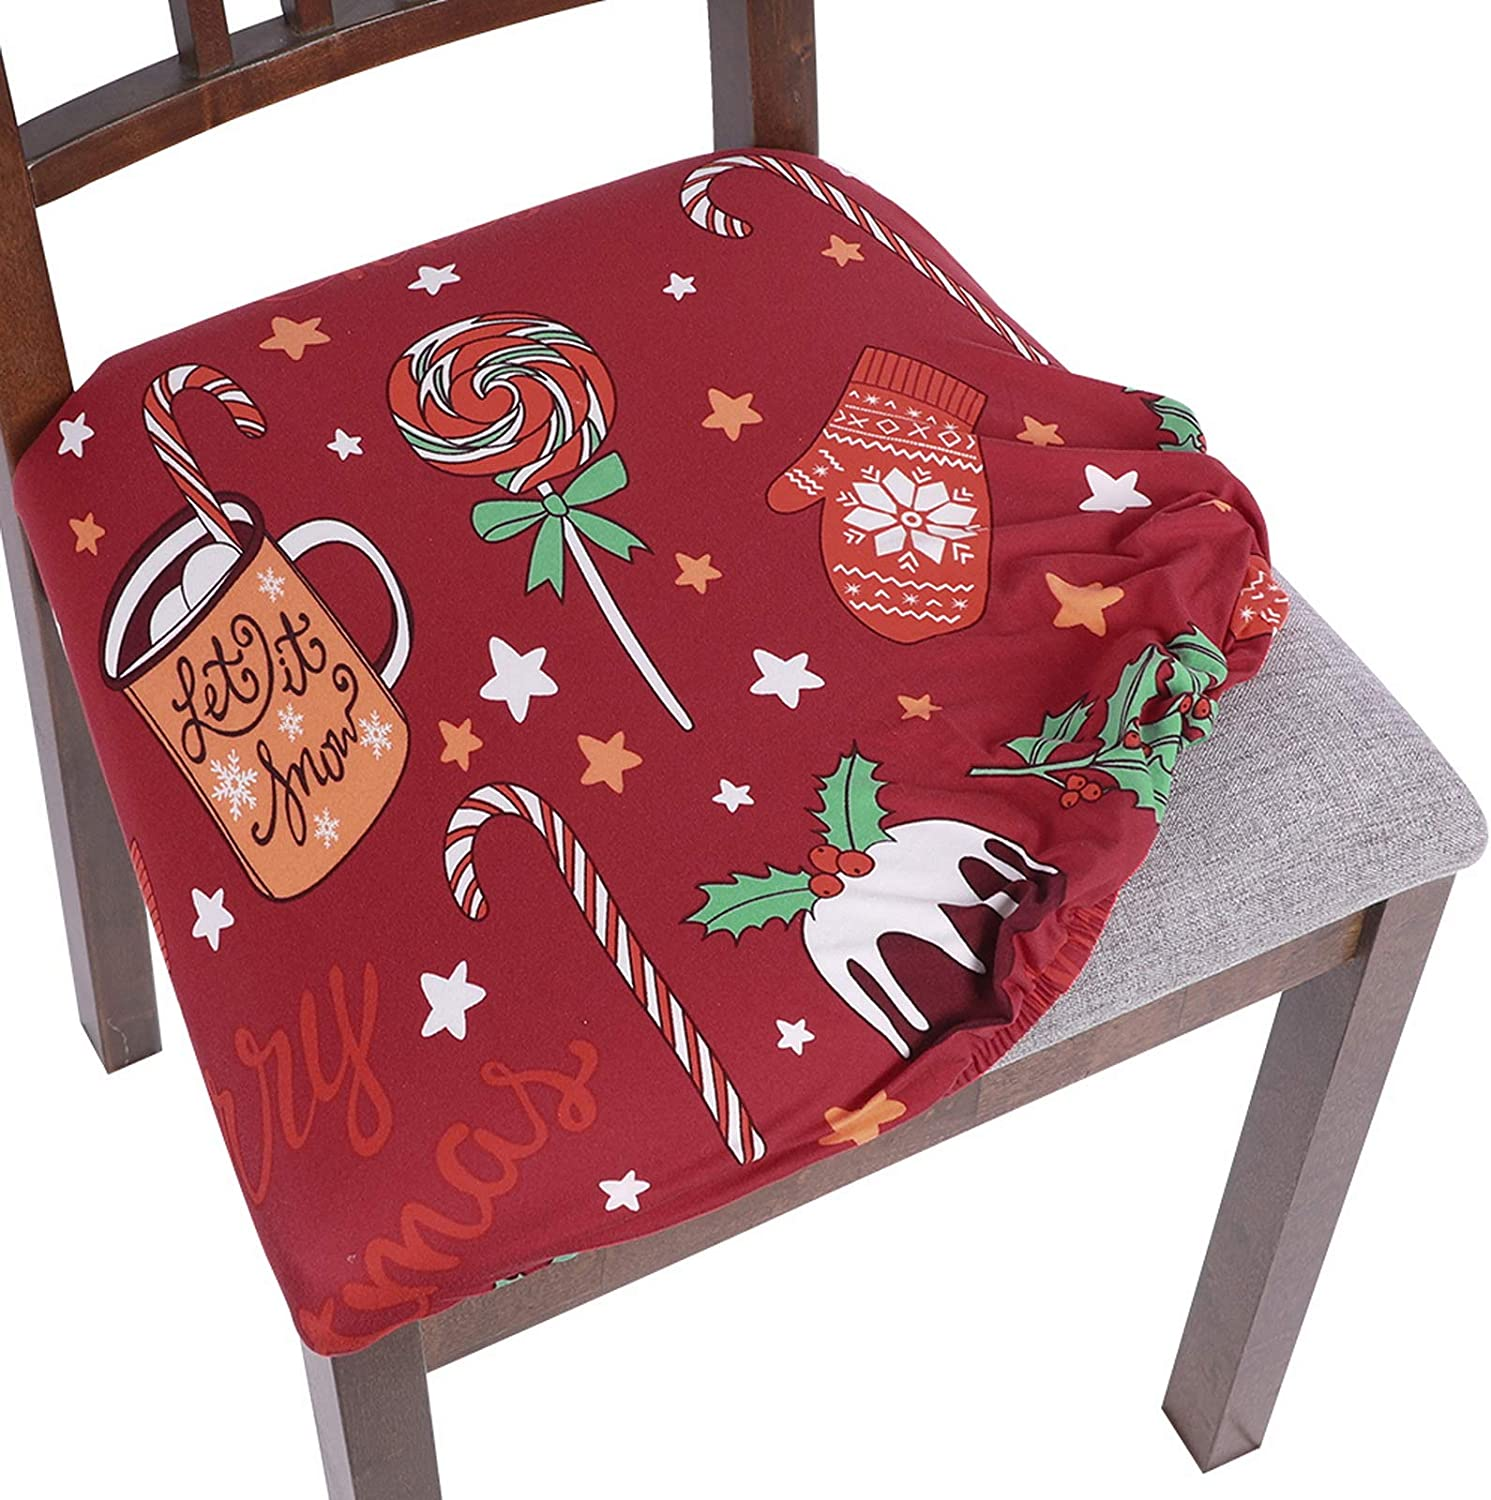 SearchI Christmas Chair Seat Covers, Stretch Jacquard Spandex Dining Room Chair Seat Covers, Removable Washable Anti-Dust Xmas Chair Seat Covers for Dining Room, Kitchen, Office (red-Candy, 4)